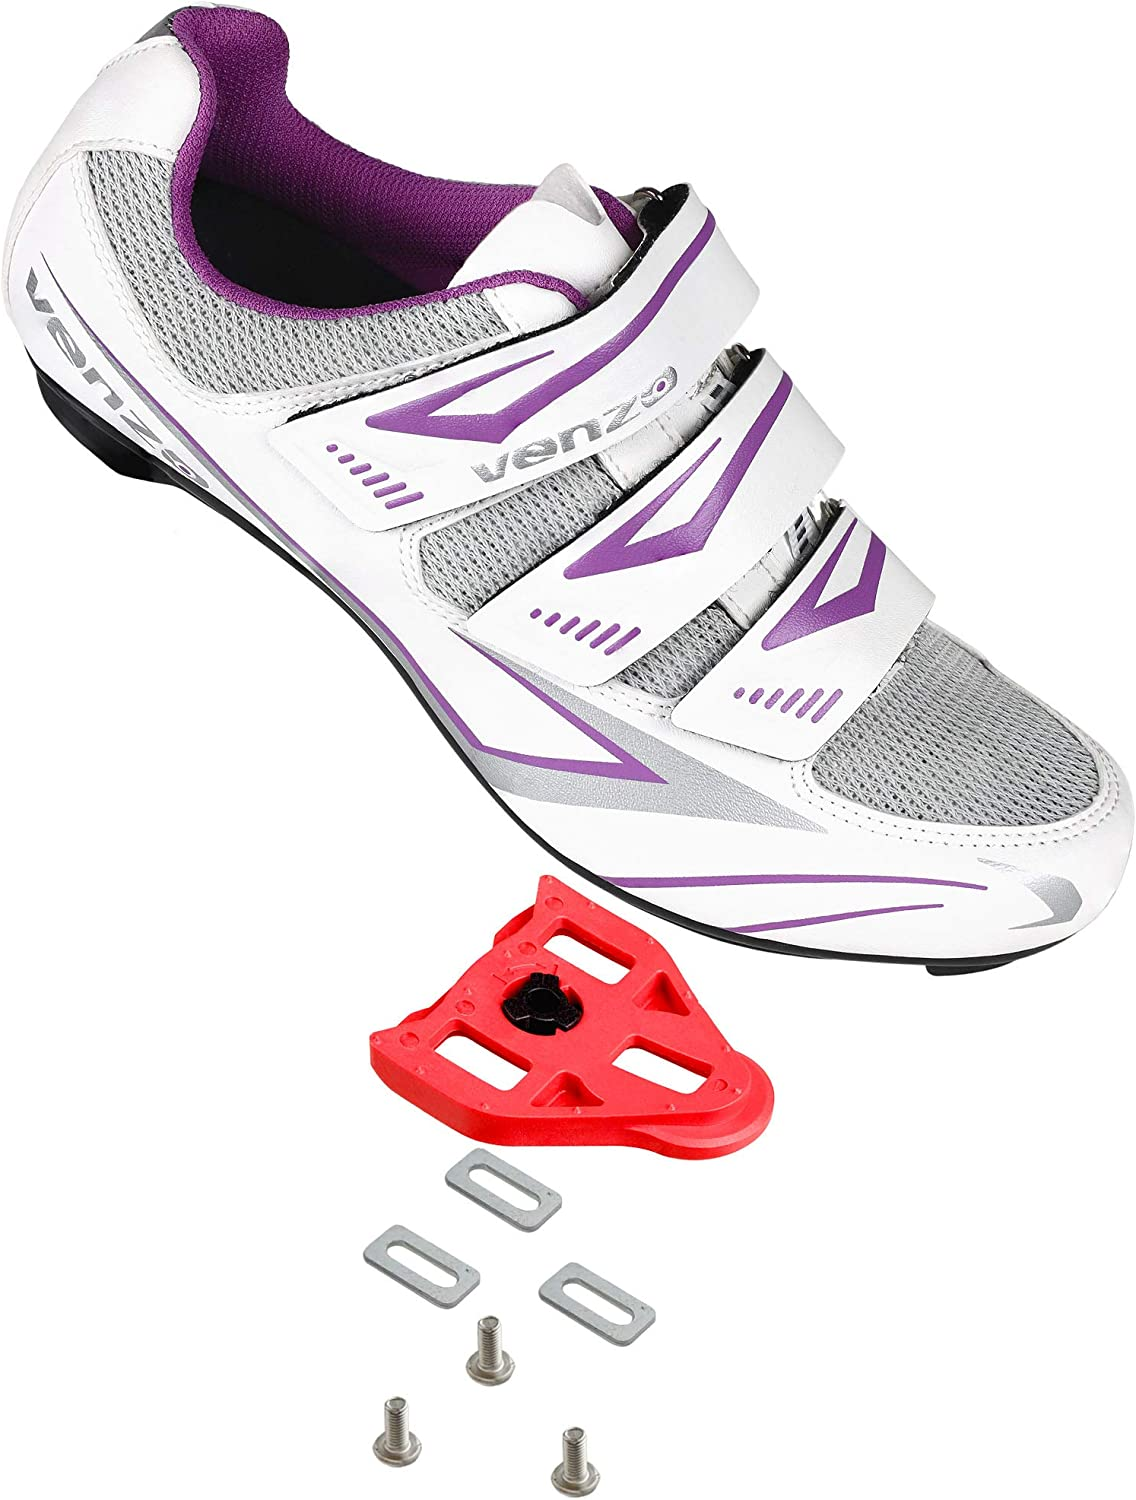 Venzo MX Bike Bicycle Women's Ladies Cycling Riding Shoes - Compatible with Peloton Shimano SPD & Look ARC Delta - Perfect for Indoor Spin Road Racing Indoor Exercise Bikes: Sports & Outdoors